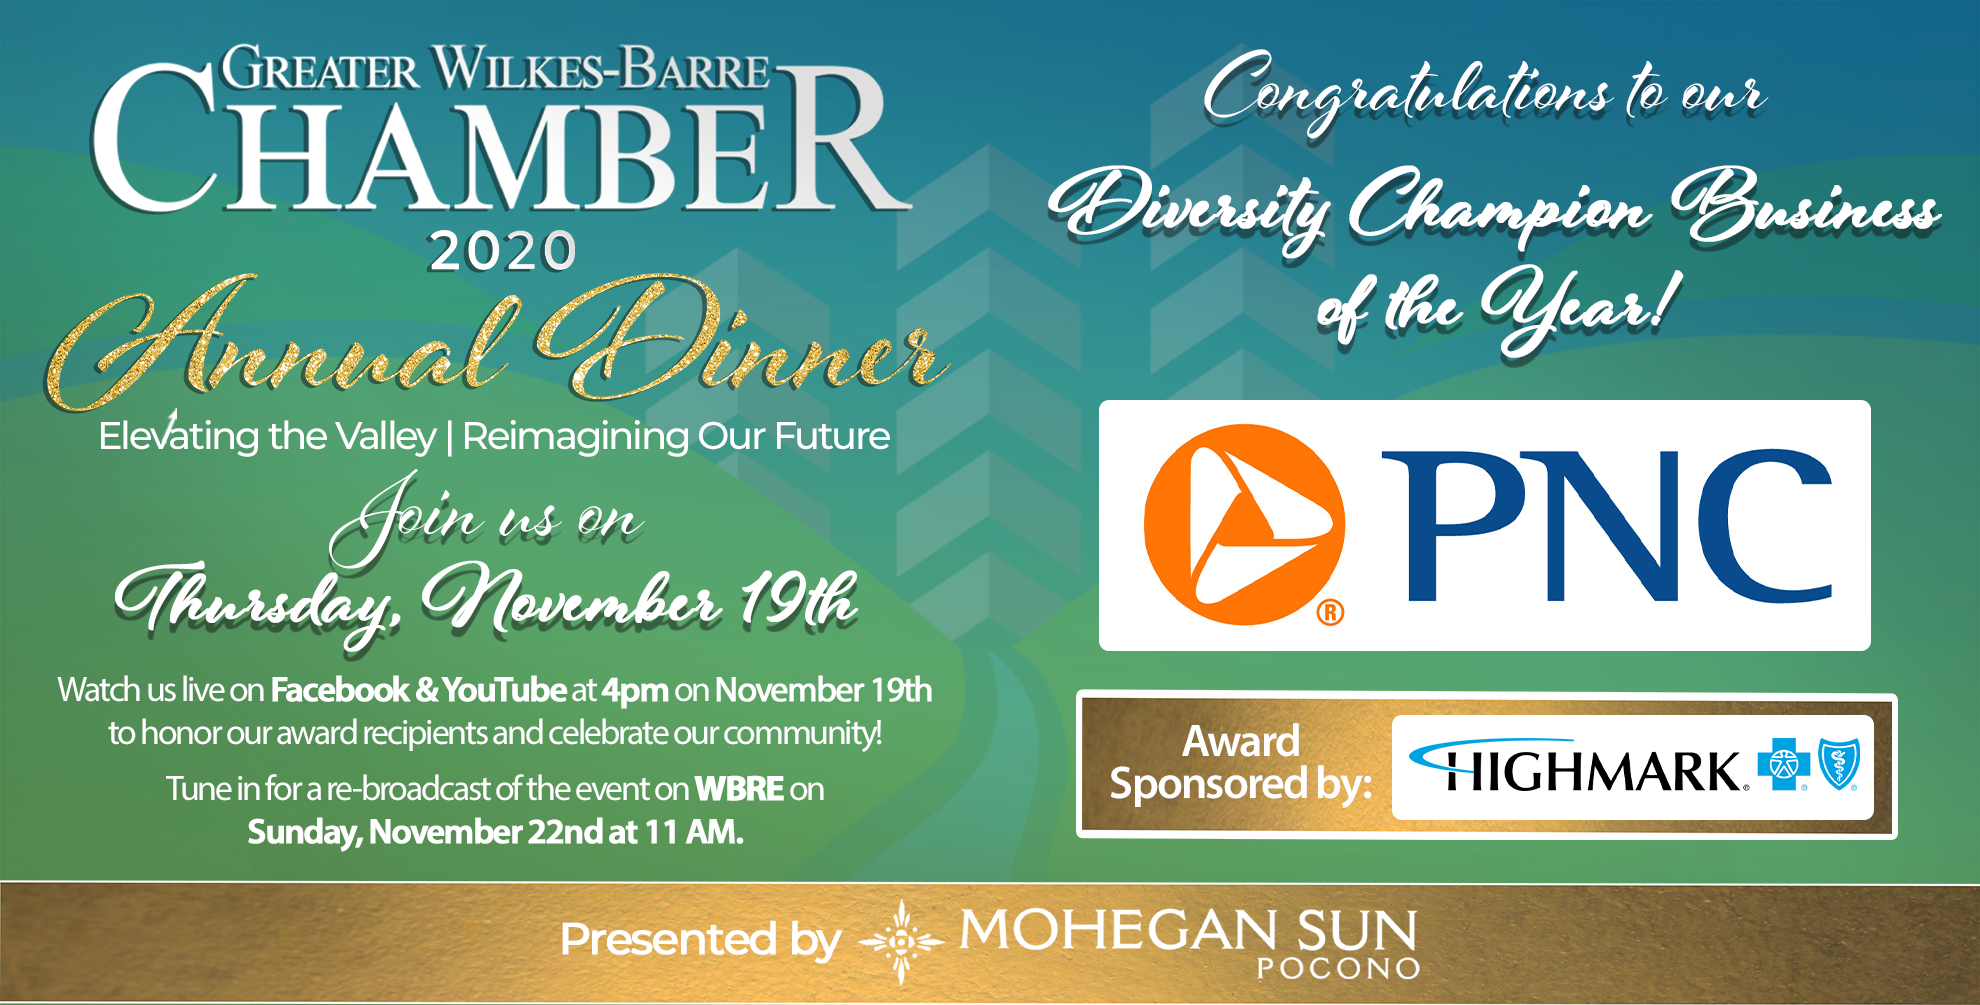 Meet Our 2020 Diversity Champion Business of the Year: PNC Bank